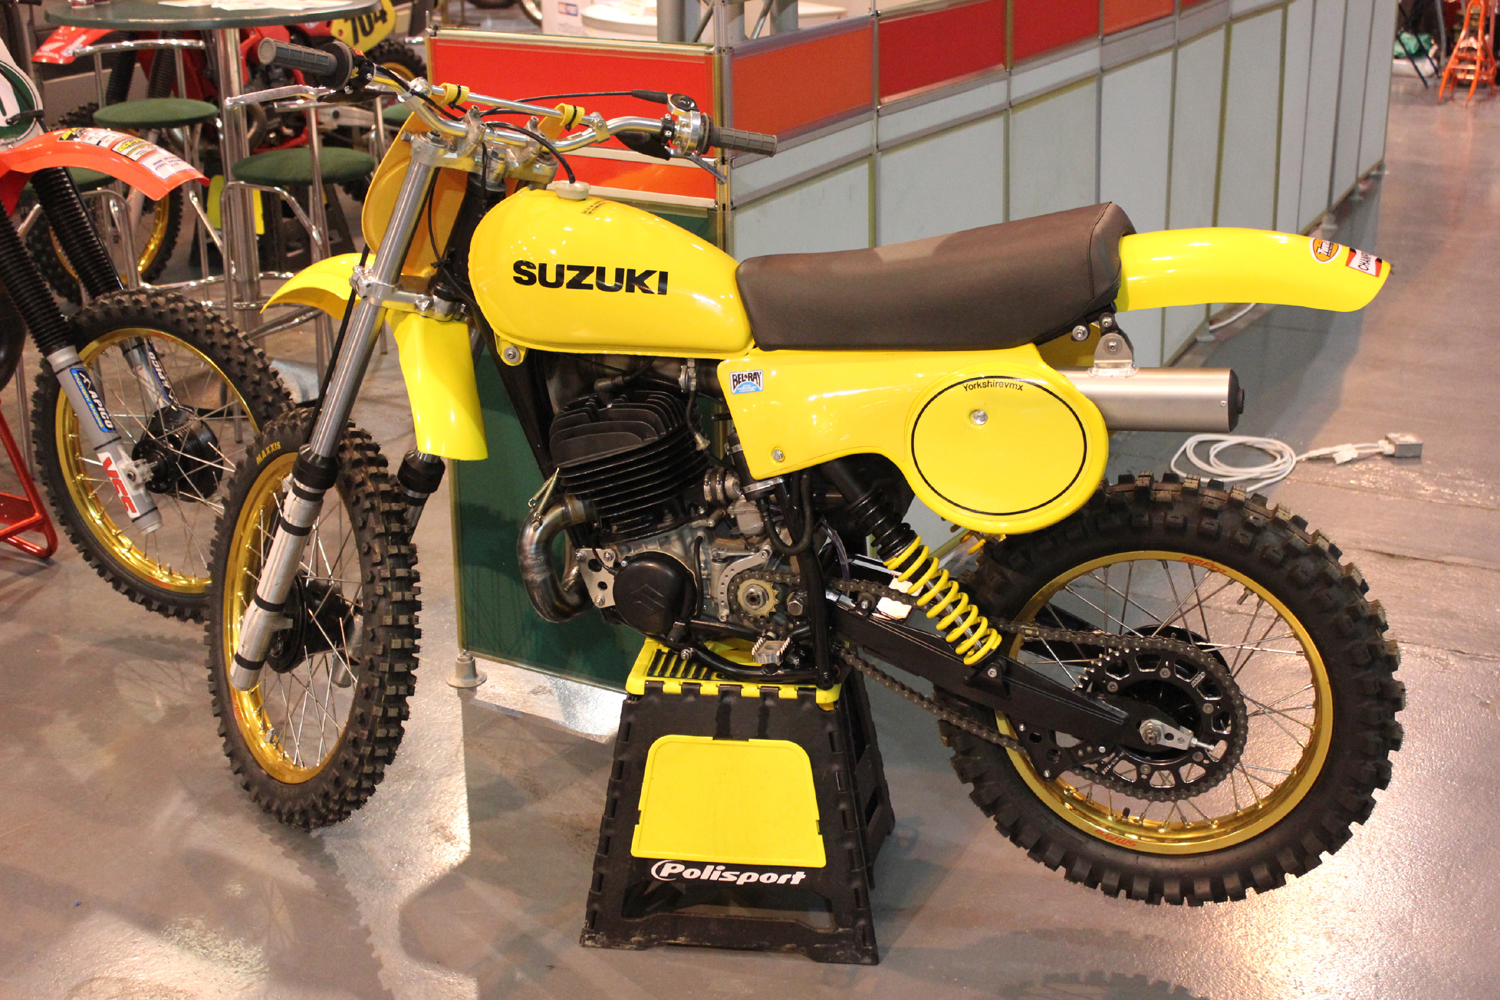 classicdirtbikerider.com-photo by Mr J-2015 Telford classic dirt bike show-SUZUKI RM TWINSHOCK BIKE